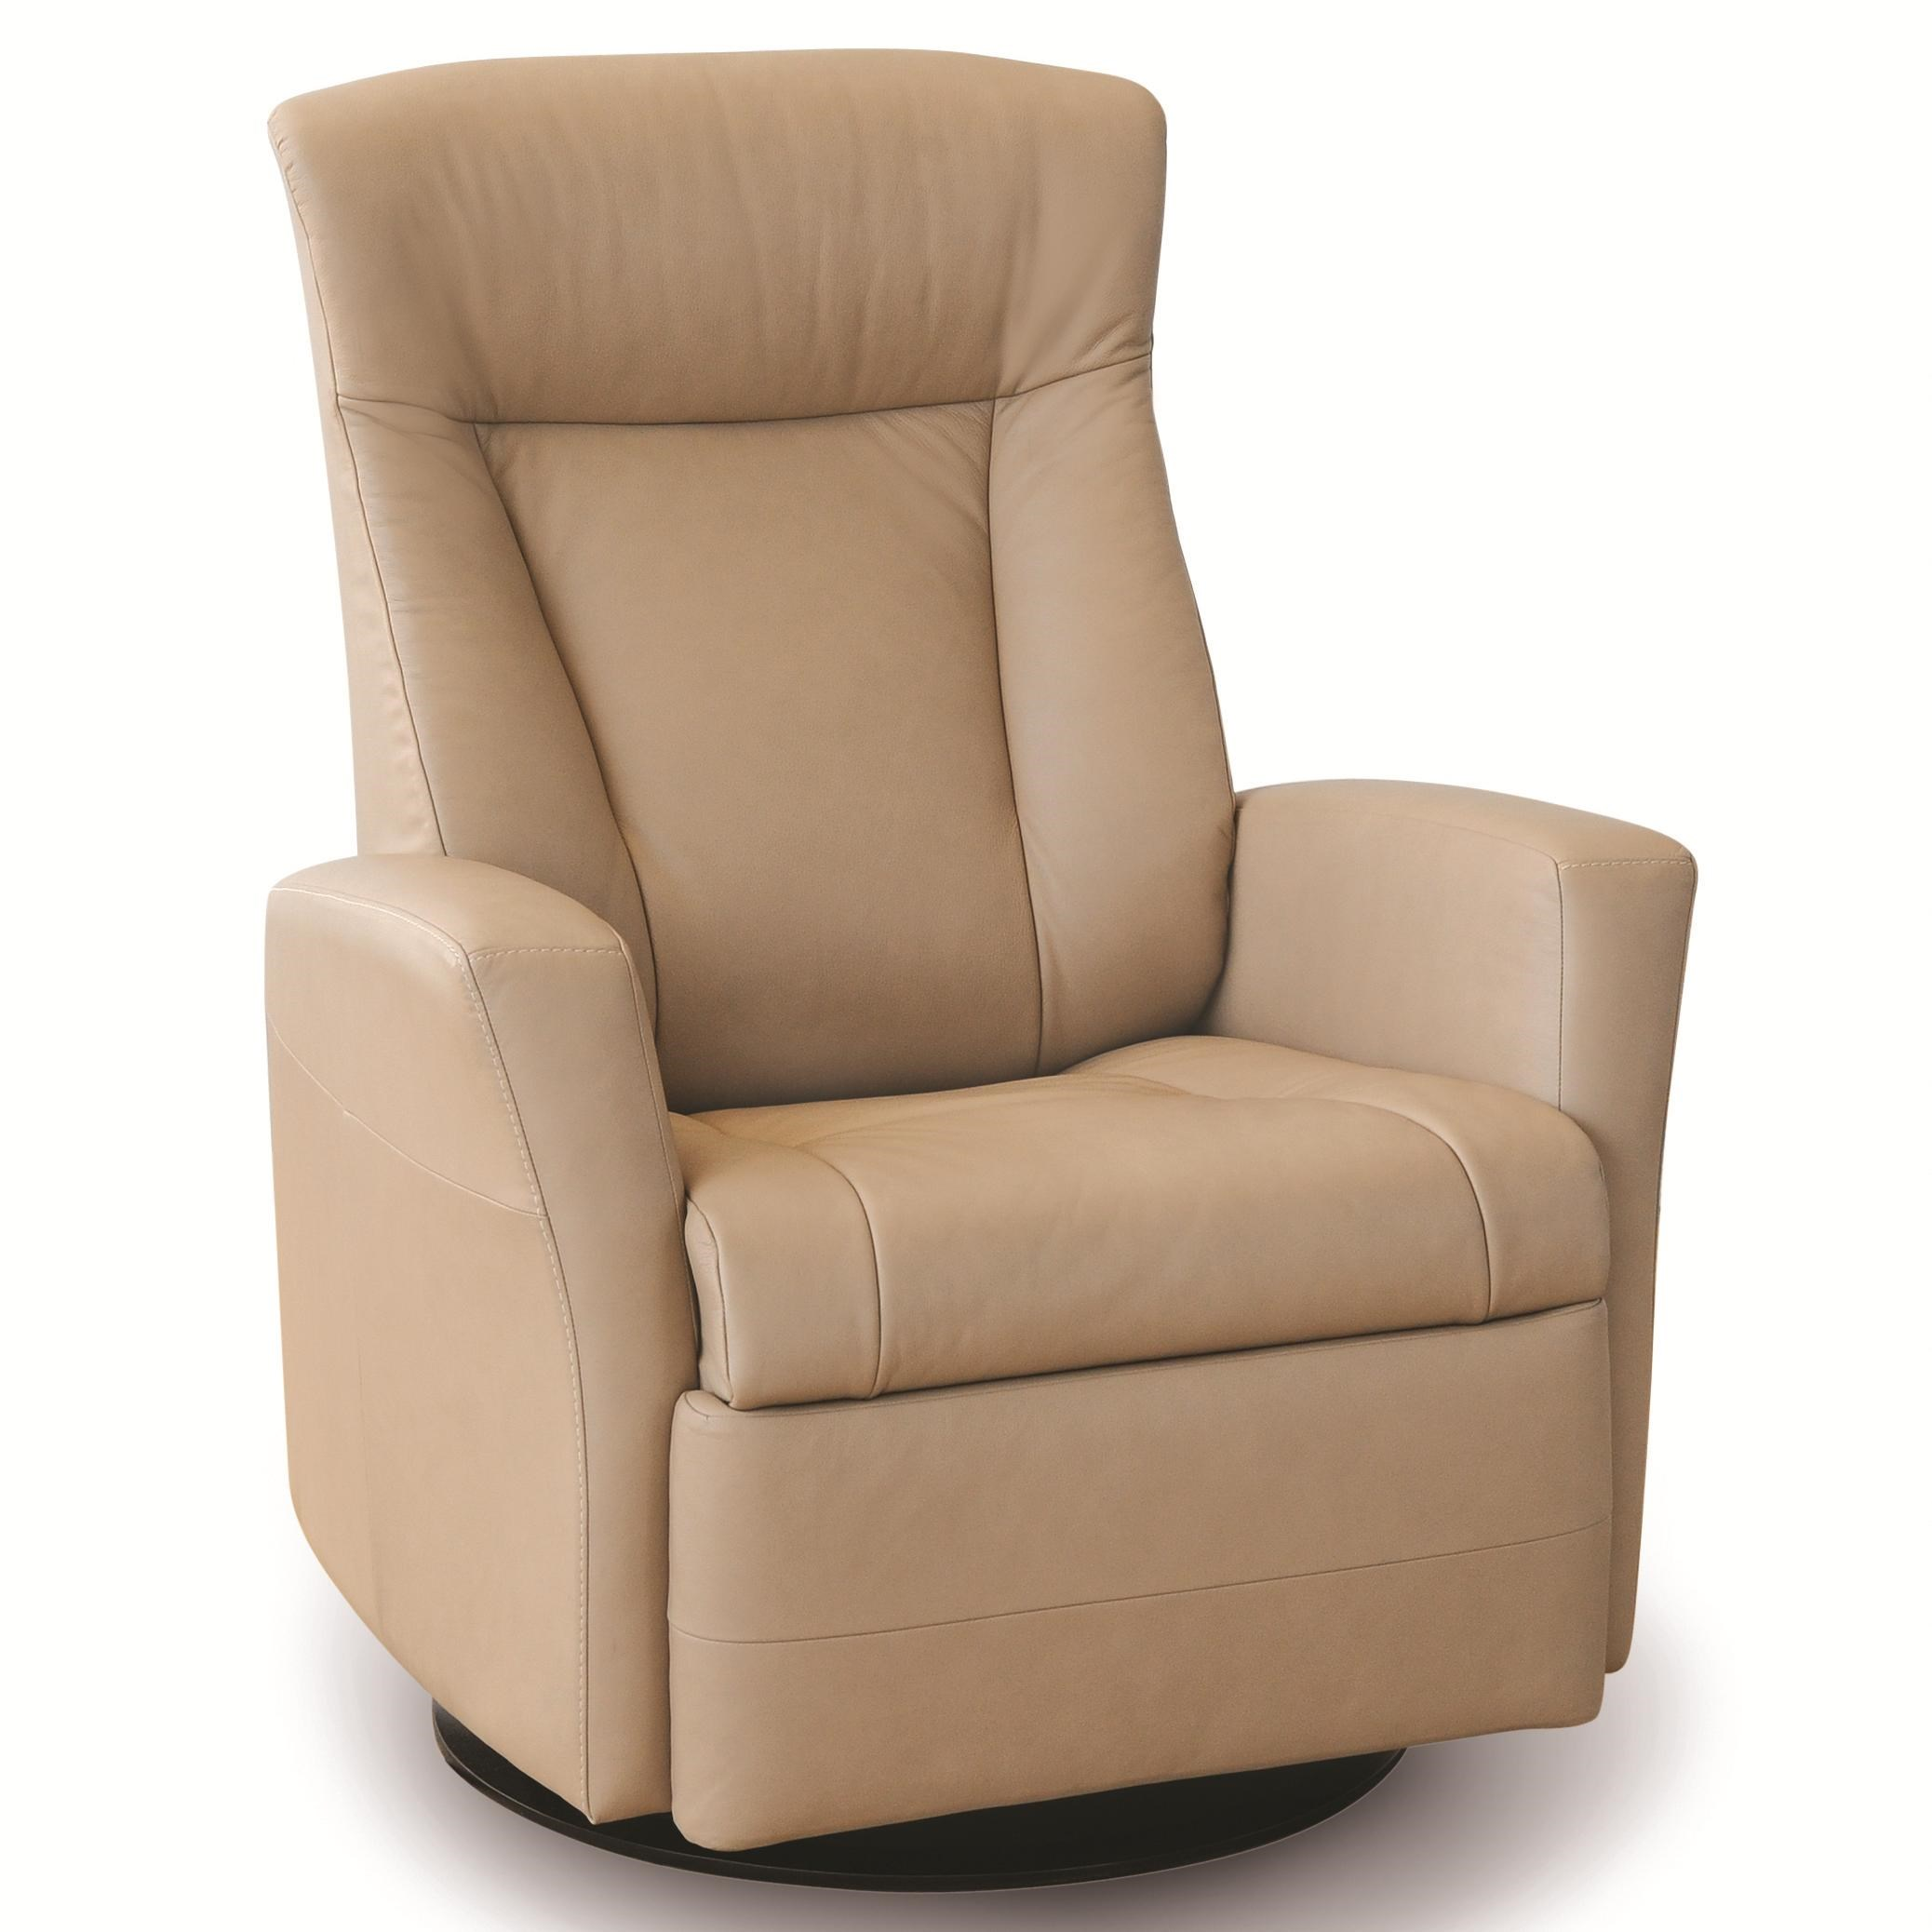 IMG Norway Recliners Modern Prince Recliner Relaxer with Swivel Glider Base  sc 1 st  Sprintz Furniture & IMG Norway Recliners Modern Prince Recliner Relaxer with Swivel ... islam-shia.org